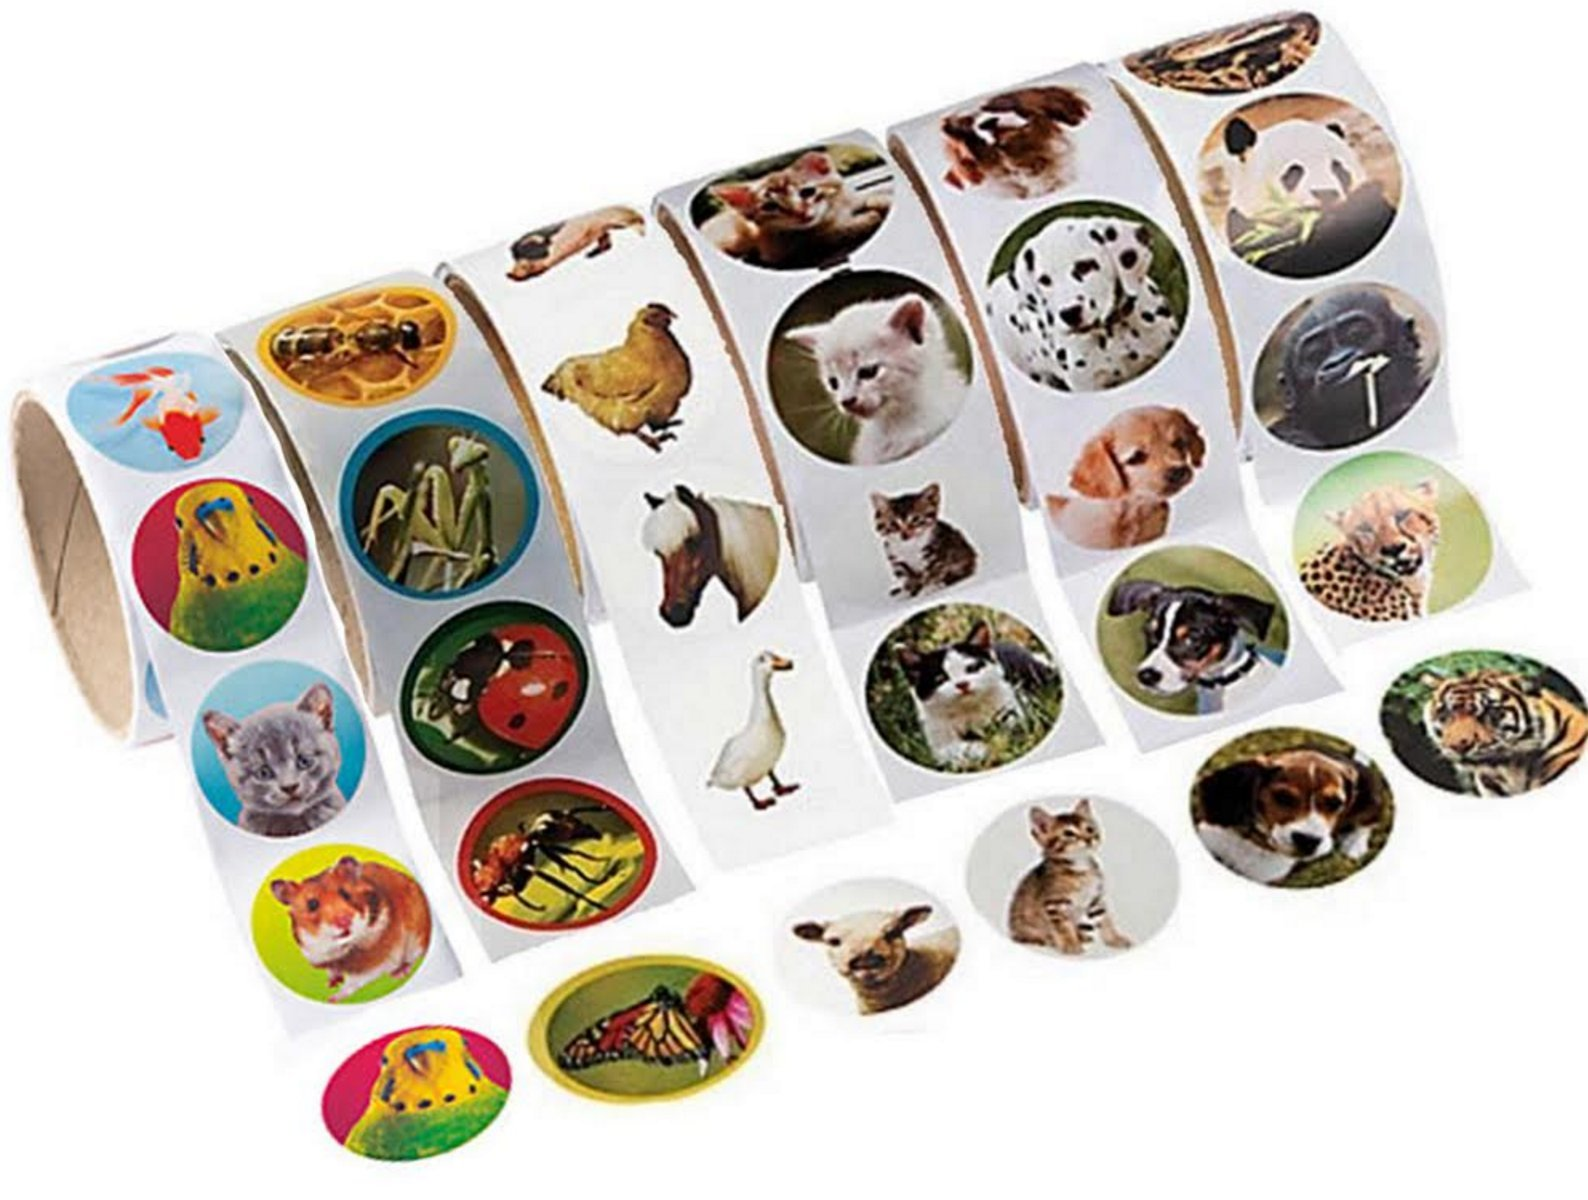 Animal Stickers, 600 Photo Stickers of Pets, Farm Animals, Zoo Animals, Insects Cats and Dogs